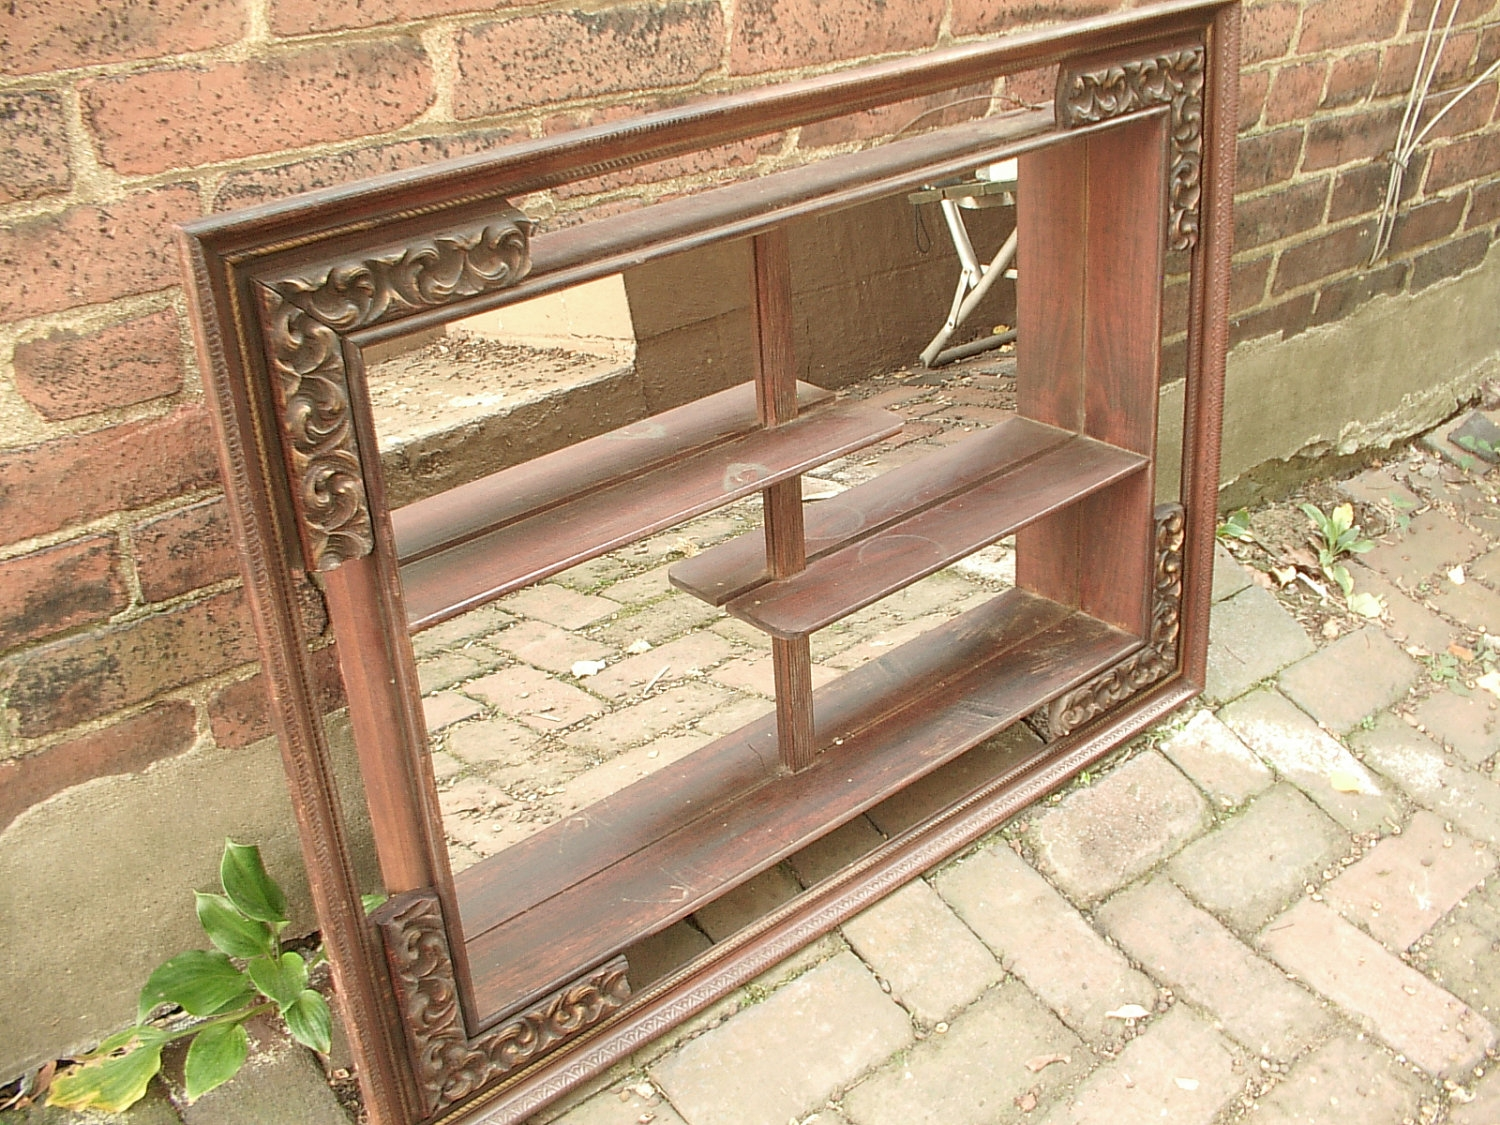 Antique Wall Shelf With Mirror Antique Wall Shelf With Mirror wall shelves design antique wall shelves wooden gallery antique 1500 X 1125